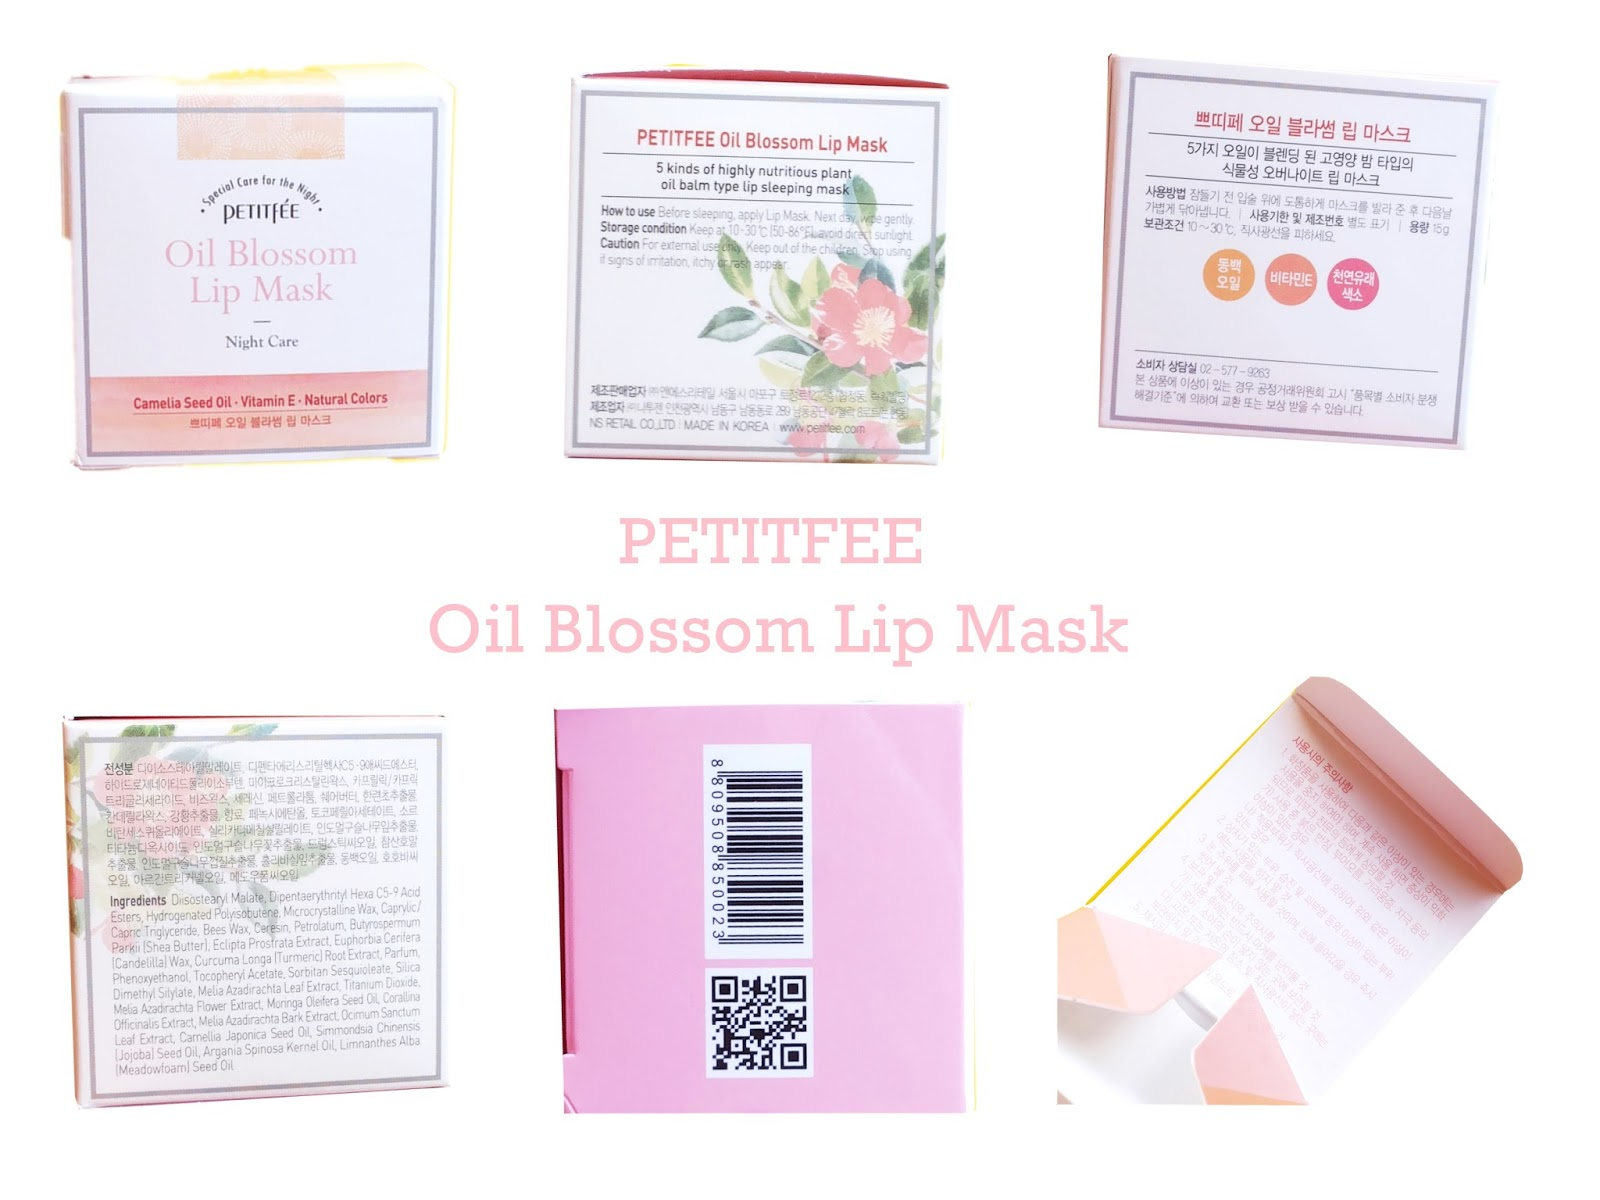 petitfee-oil-blossom-lip-mask, box-petitfee-oil-blossom-lip-mask